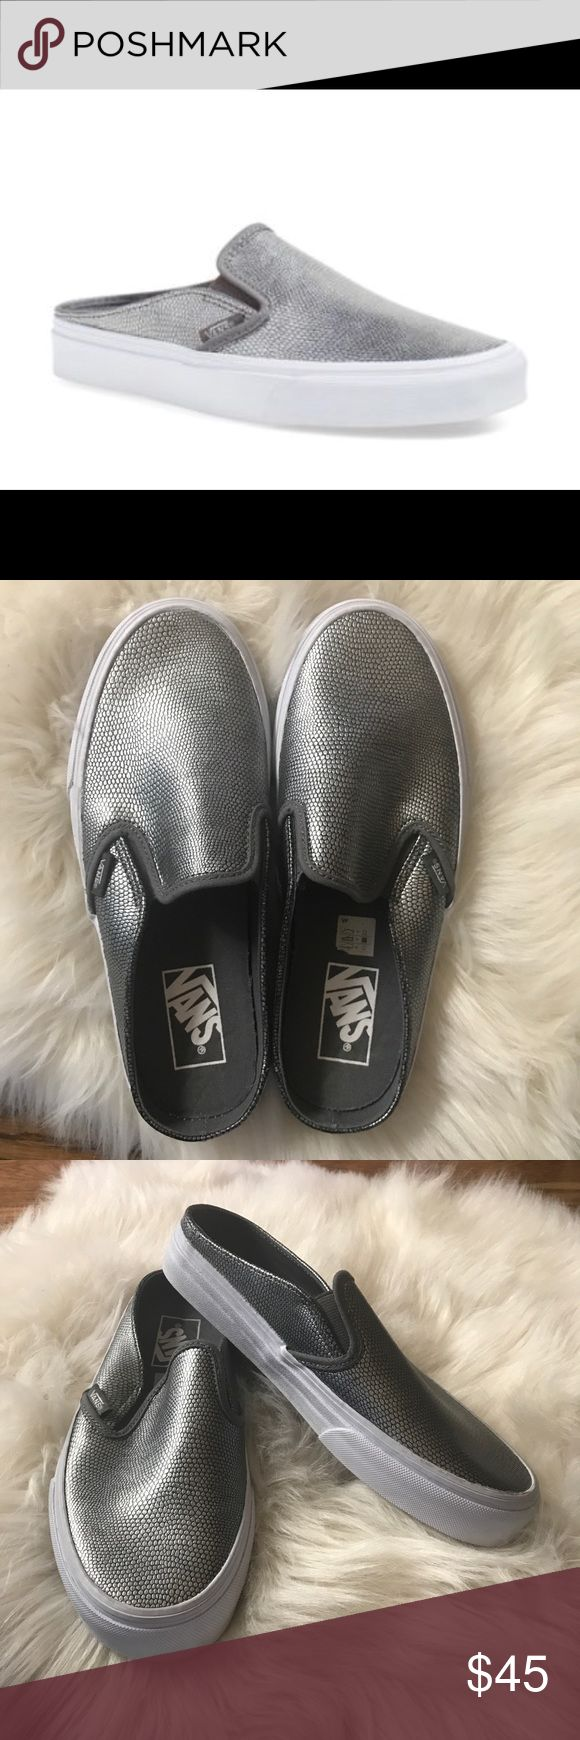 Vans silver gray textured slip on sneakers 7.5 Vans slip on classic mule sneaker. Gray silver embossed. Size ladies 7.5. Website recommends to size up 1/2 size. Look brand new! Minor marks from storage but overall excellent! Vans Shoes Mules & Clogs